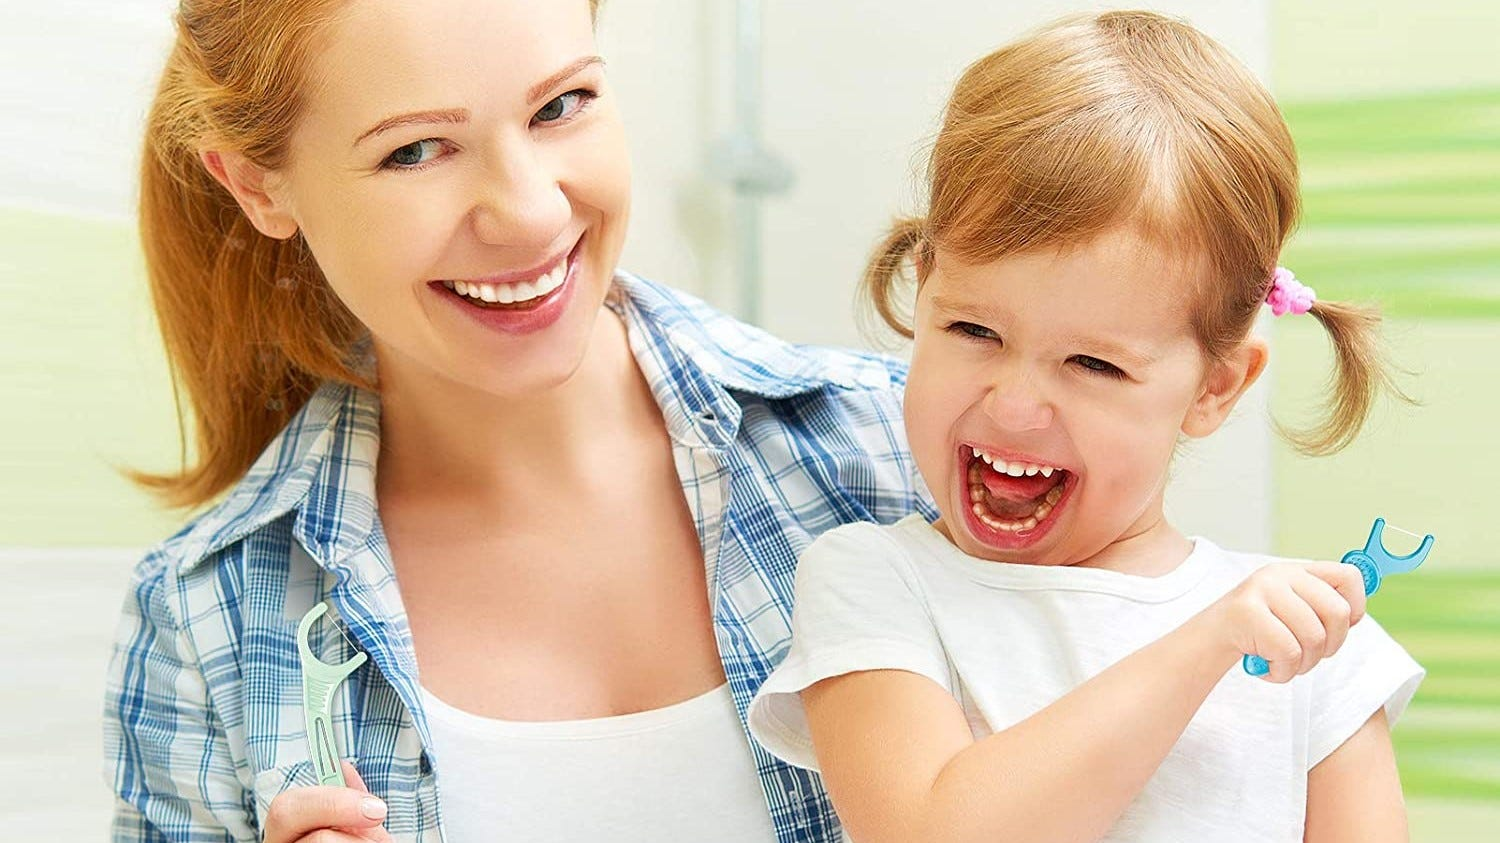 Mom and child using Plackers dental floss.